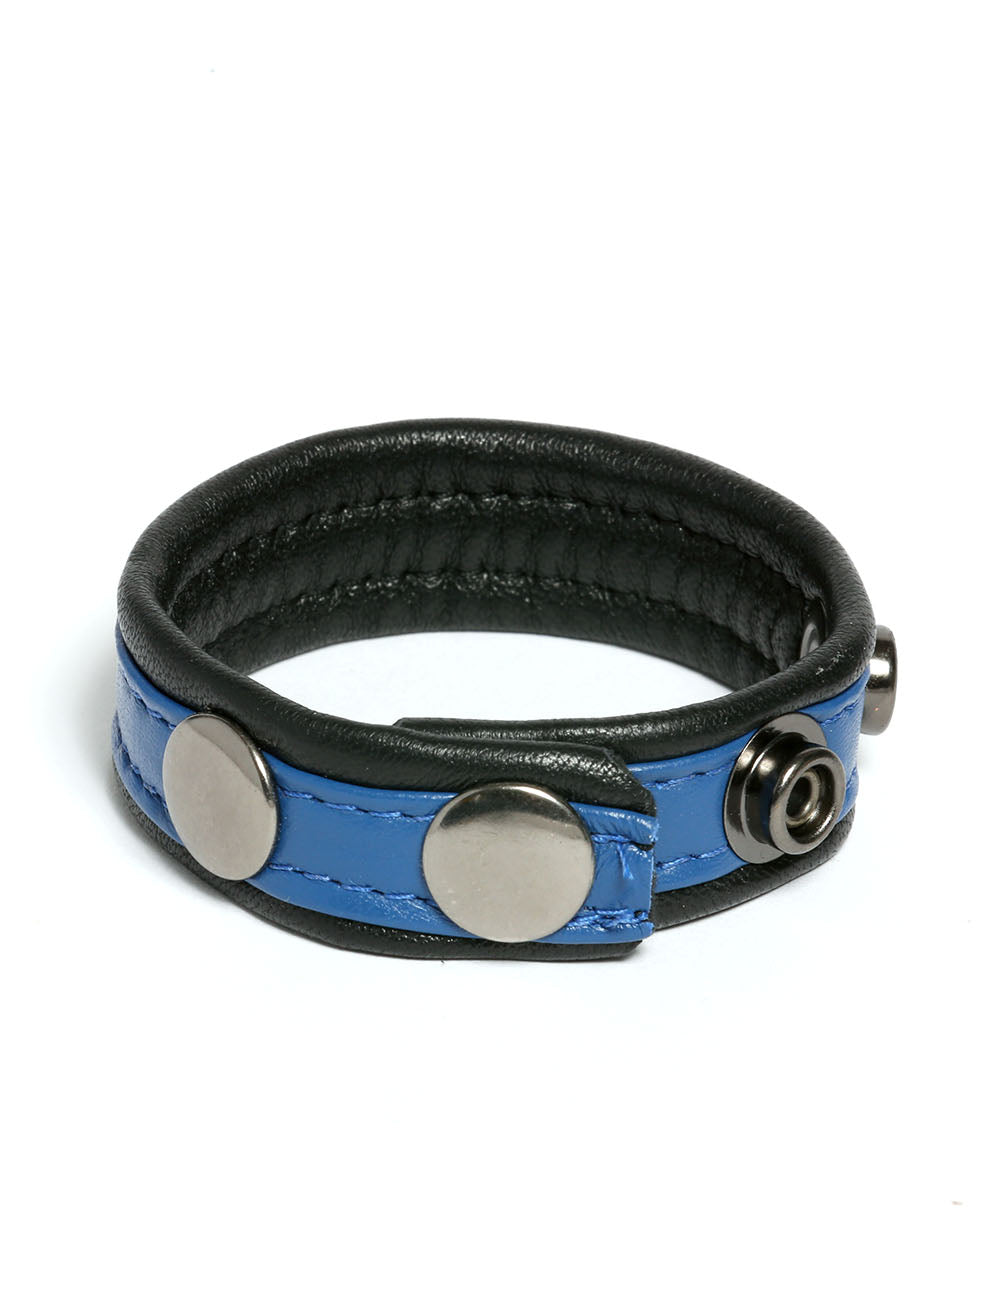 Adjustable Leather Cock Strap in Blue